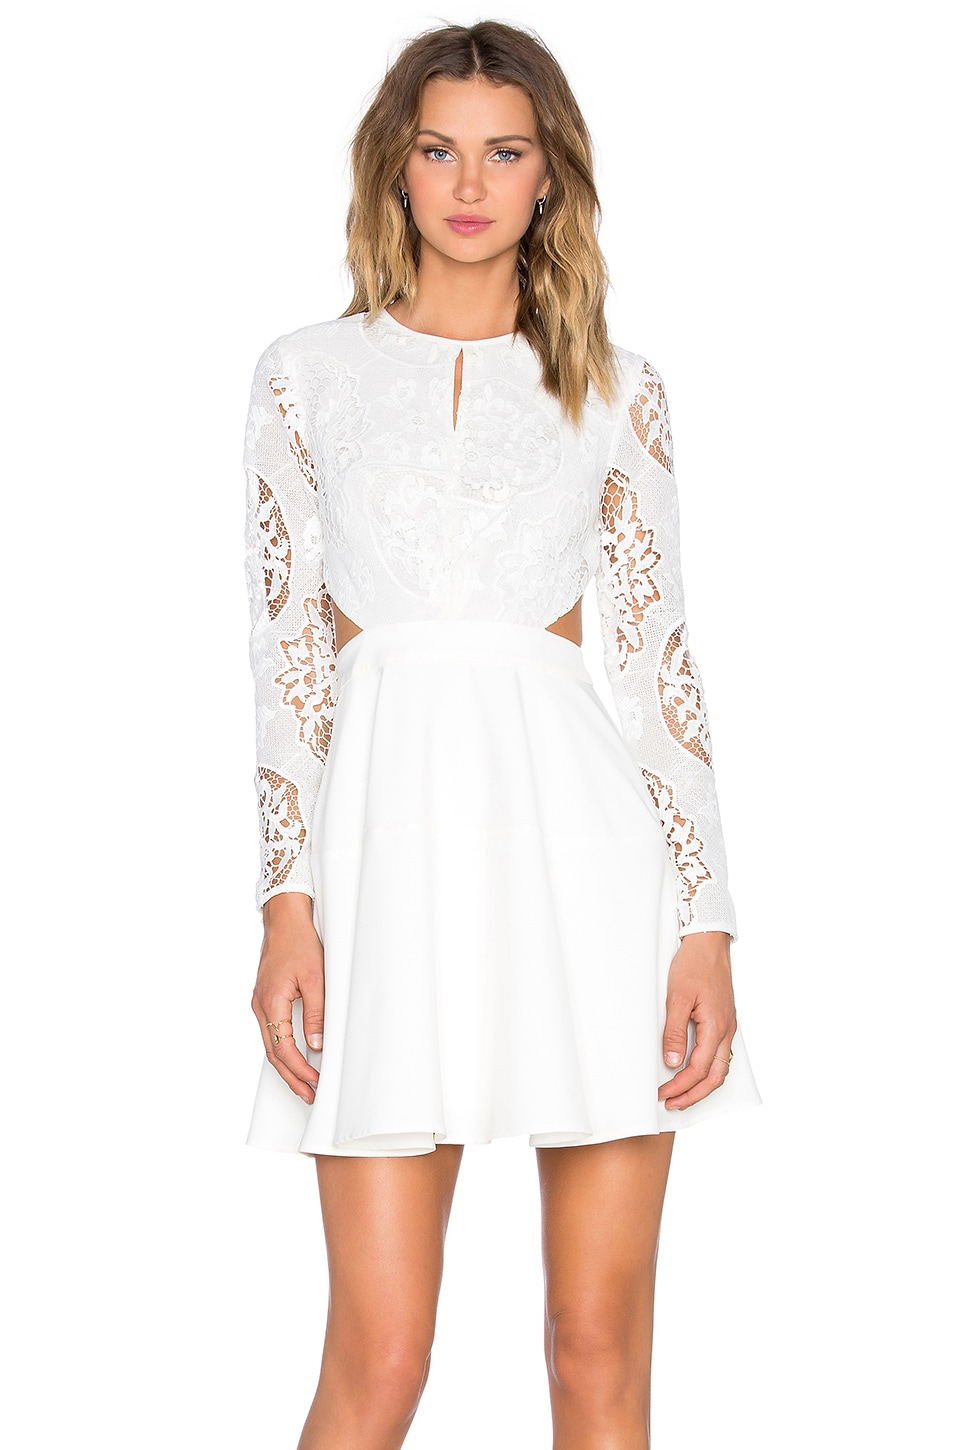 Mon Cherie Lace Dress by Line & Dot